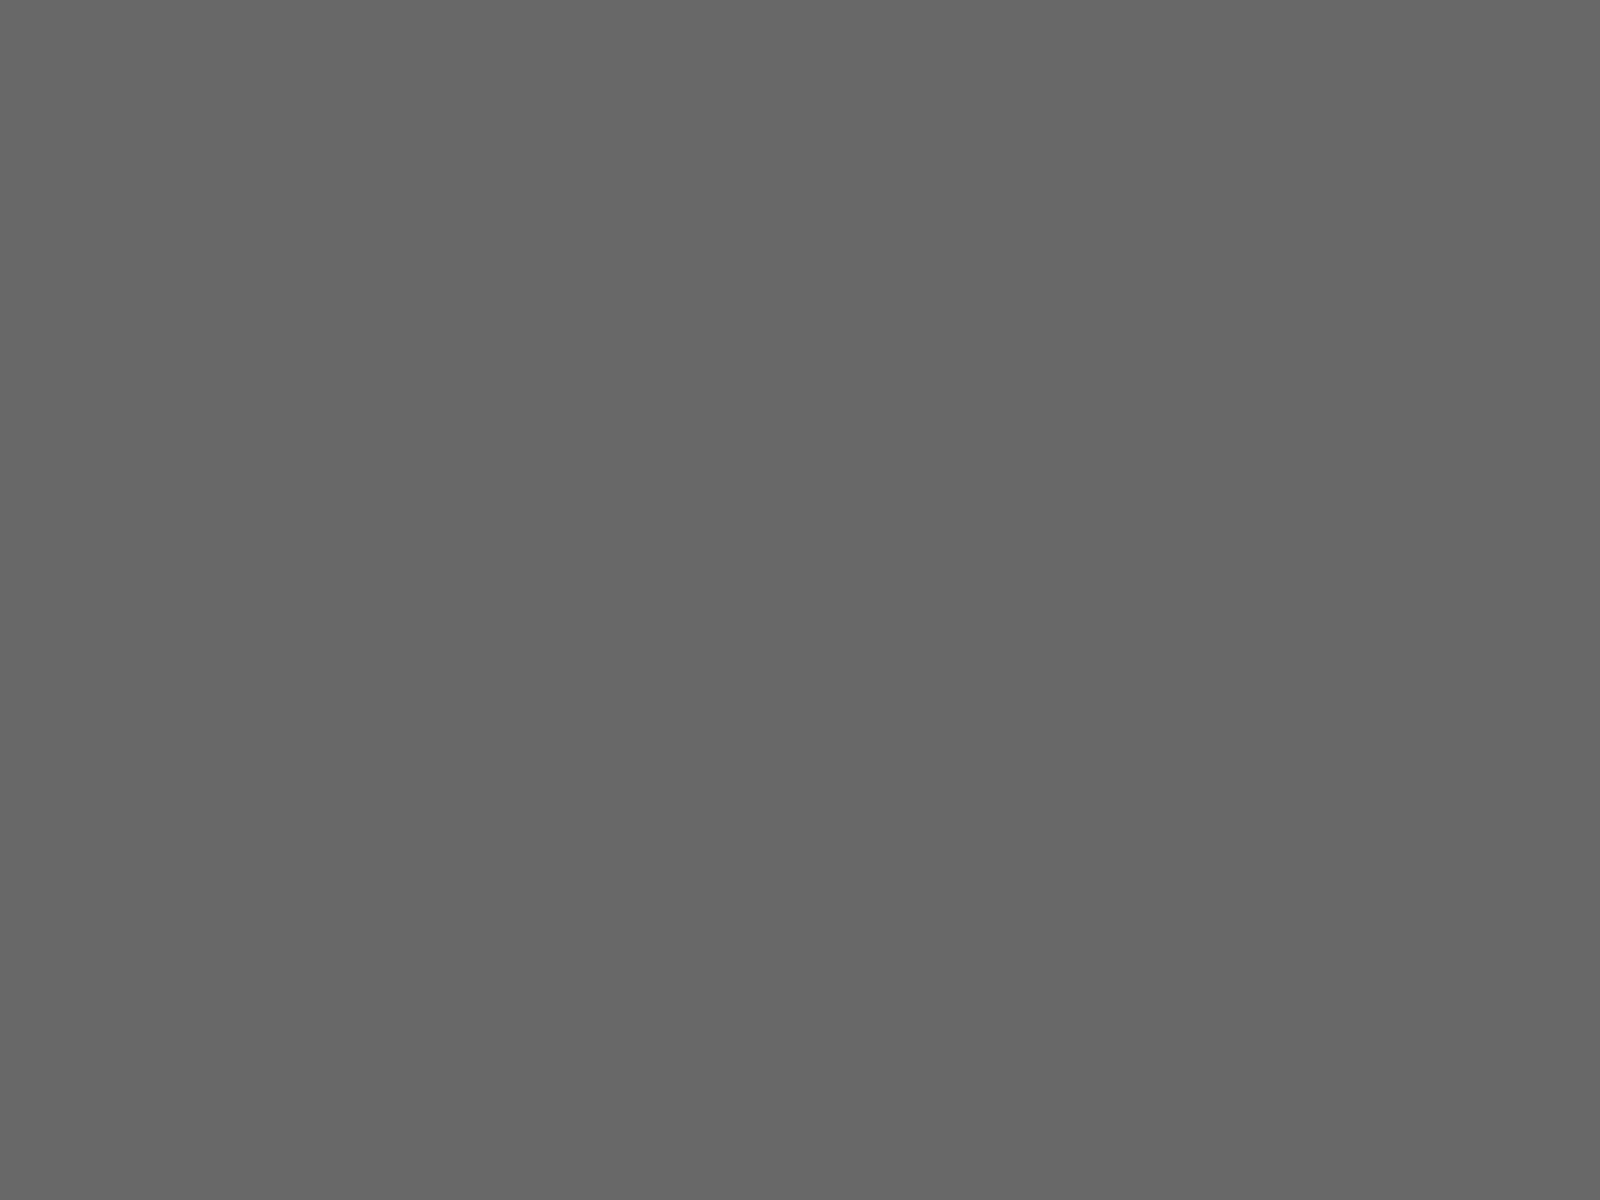 1600x1200 Dim Gray Solid Color Background